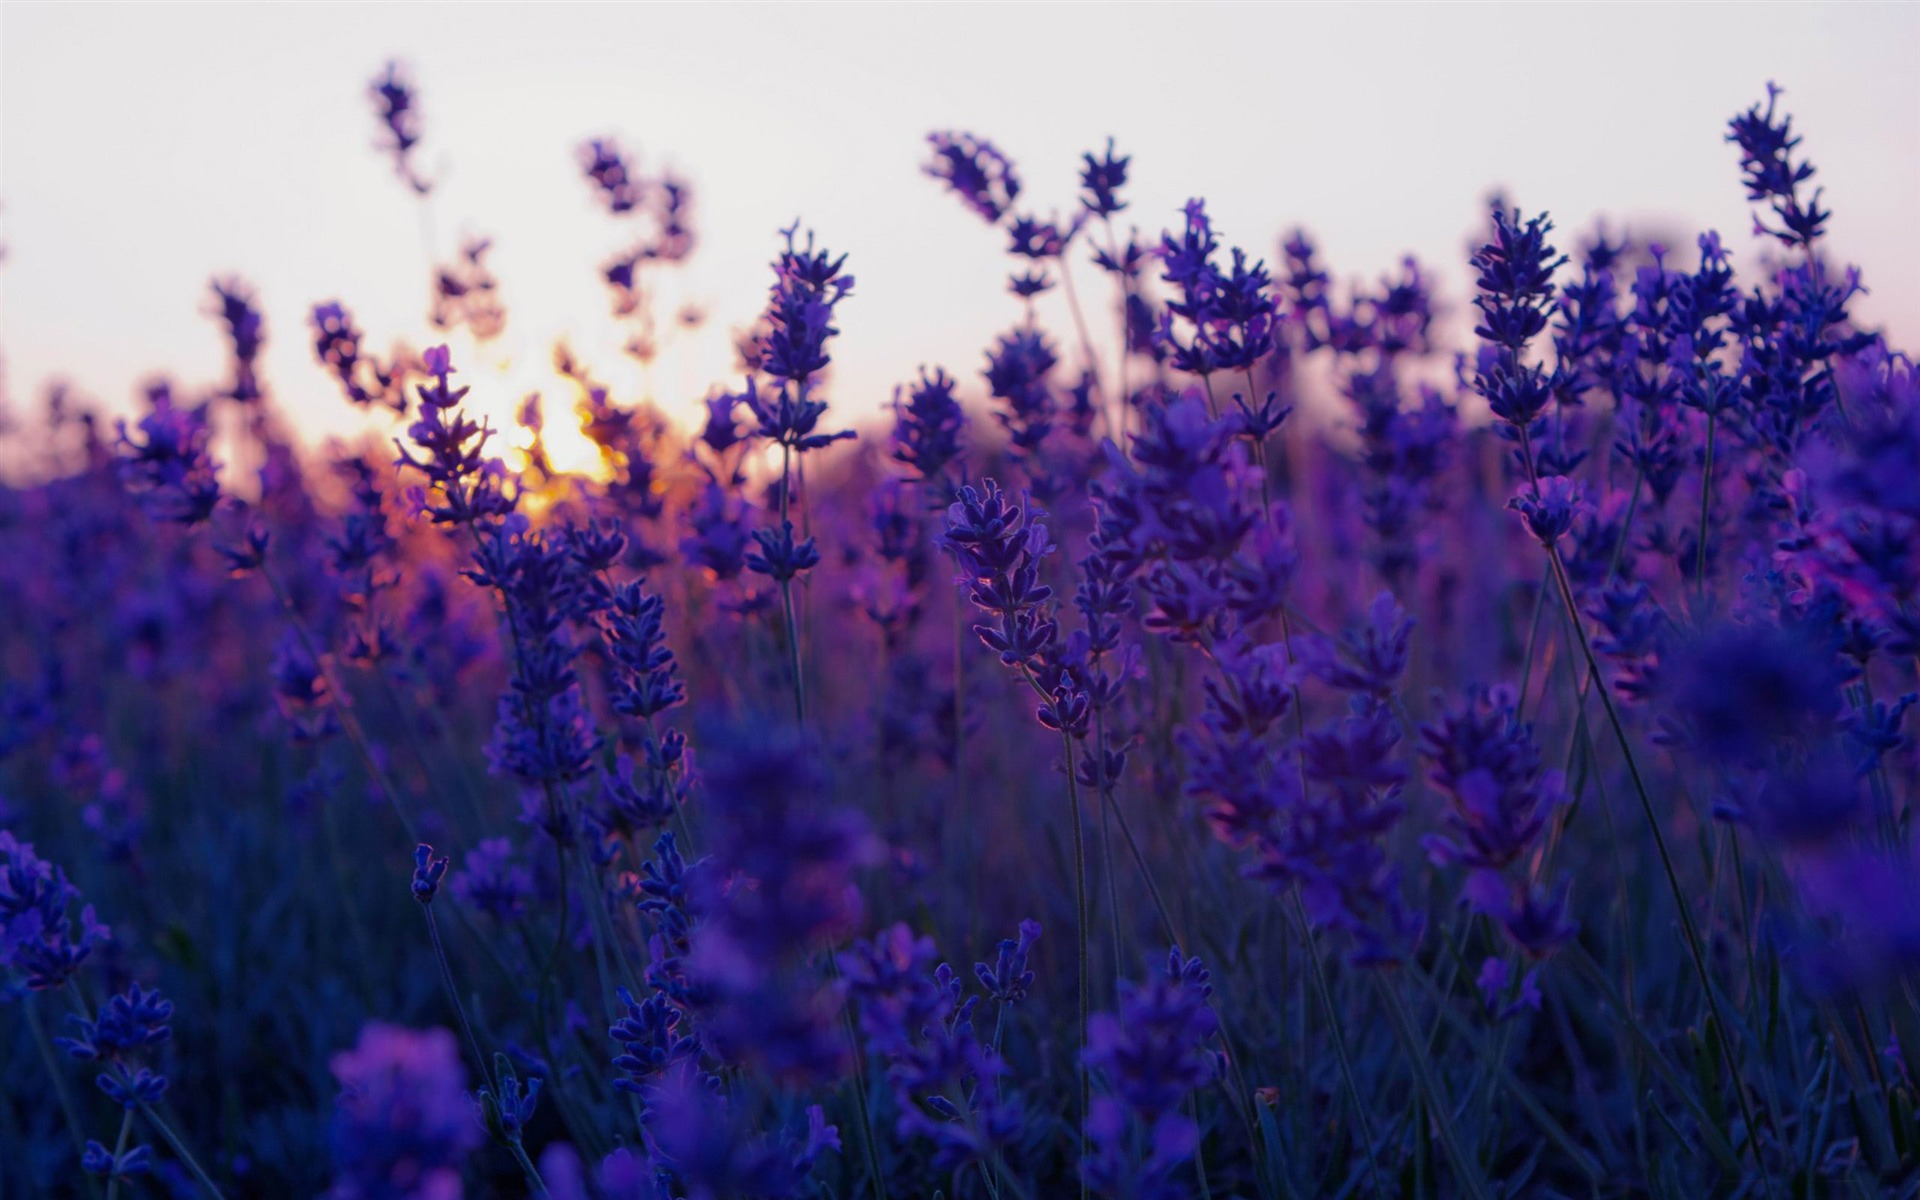 summer purple flowers - wallpaper, high definition, high quality